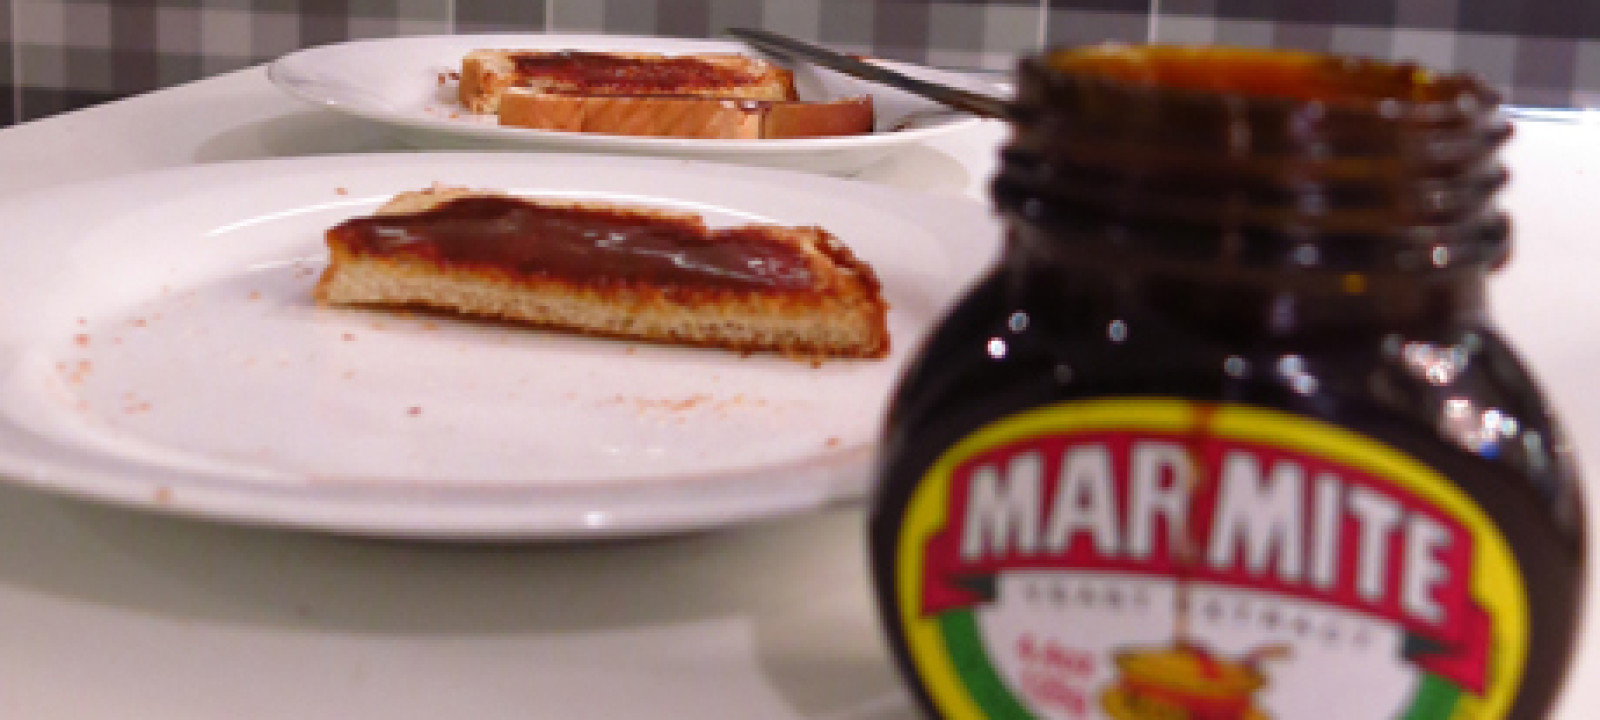 Marmite Taste Test, Feature Photo